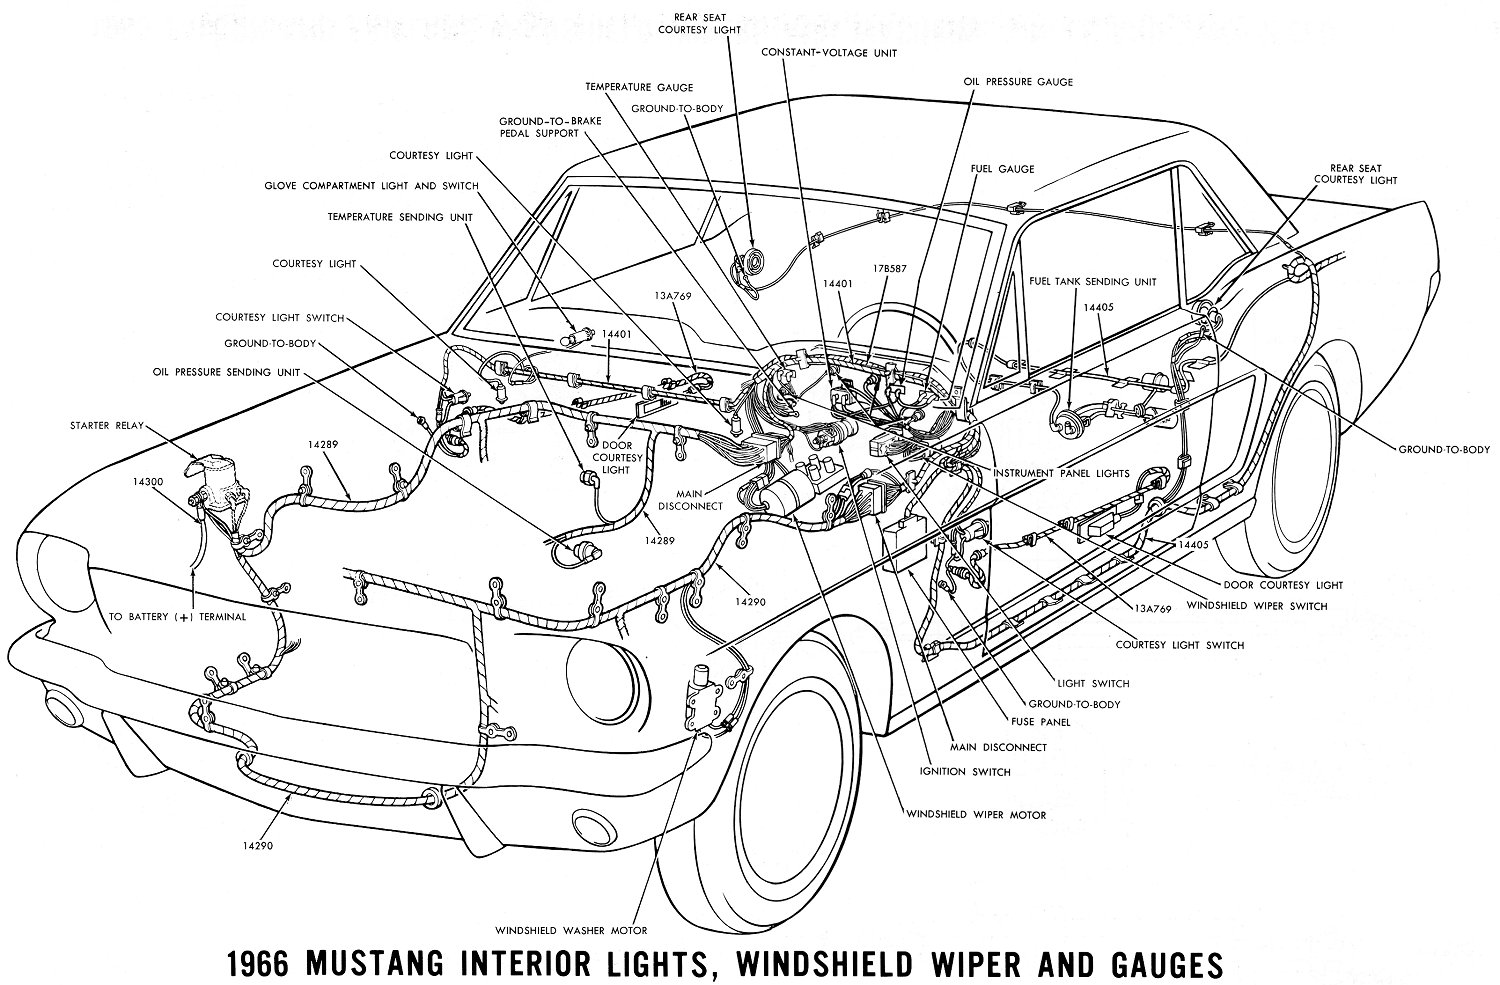 mustang restoration wiring harness with 1966 Mustang Wiring Diagrams on more 137 in addition 2007 Ford Mustang 6 Cylinder Engine Diagram together with 1968 Mustang Wiring Diagram Vacuum Schematics as well 1968 Mustang Transmission Selector Wiring Diagram in addition ments.